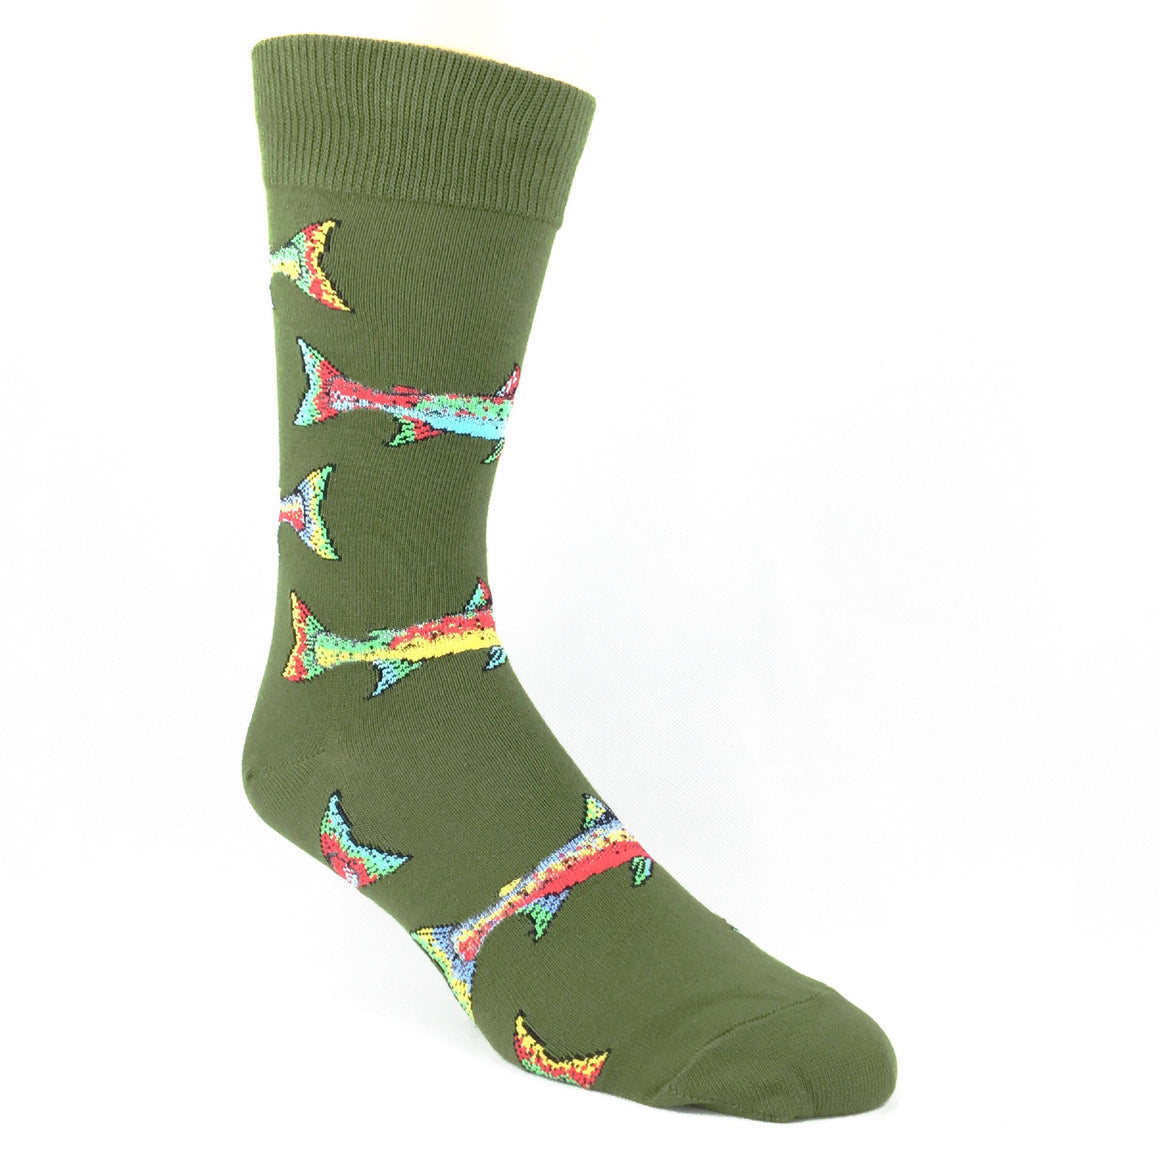 Trout Socks - Parrot Green - The Sock Spot